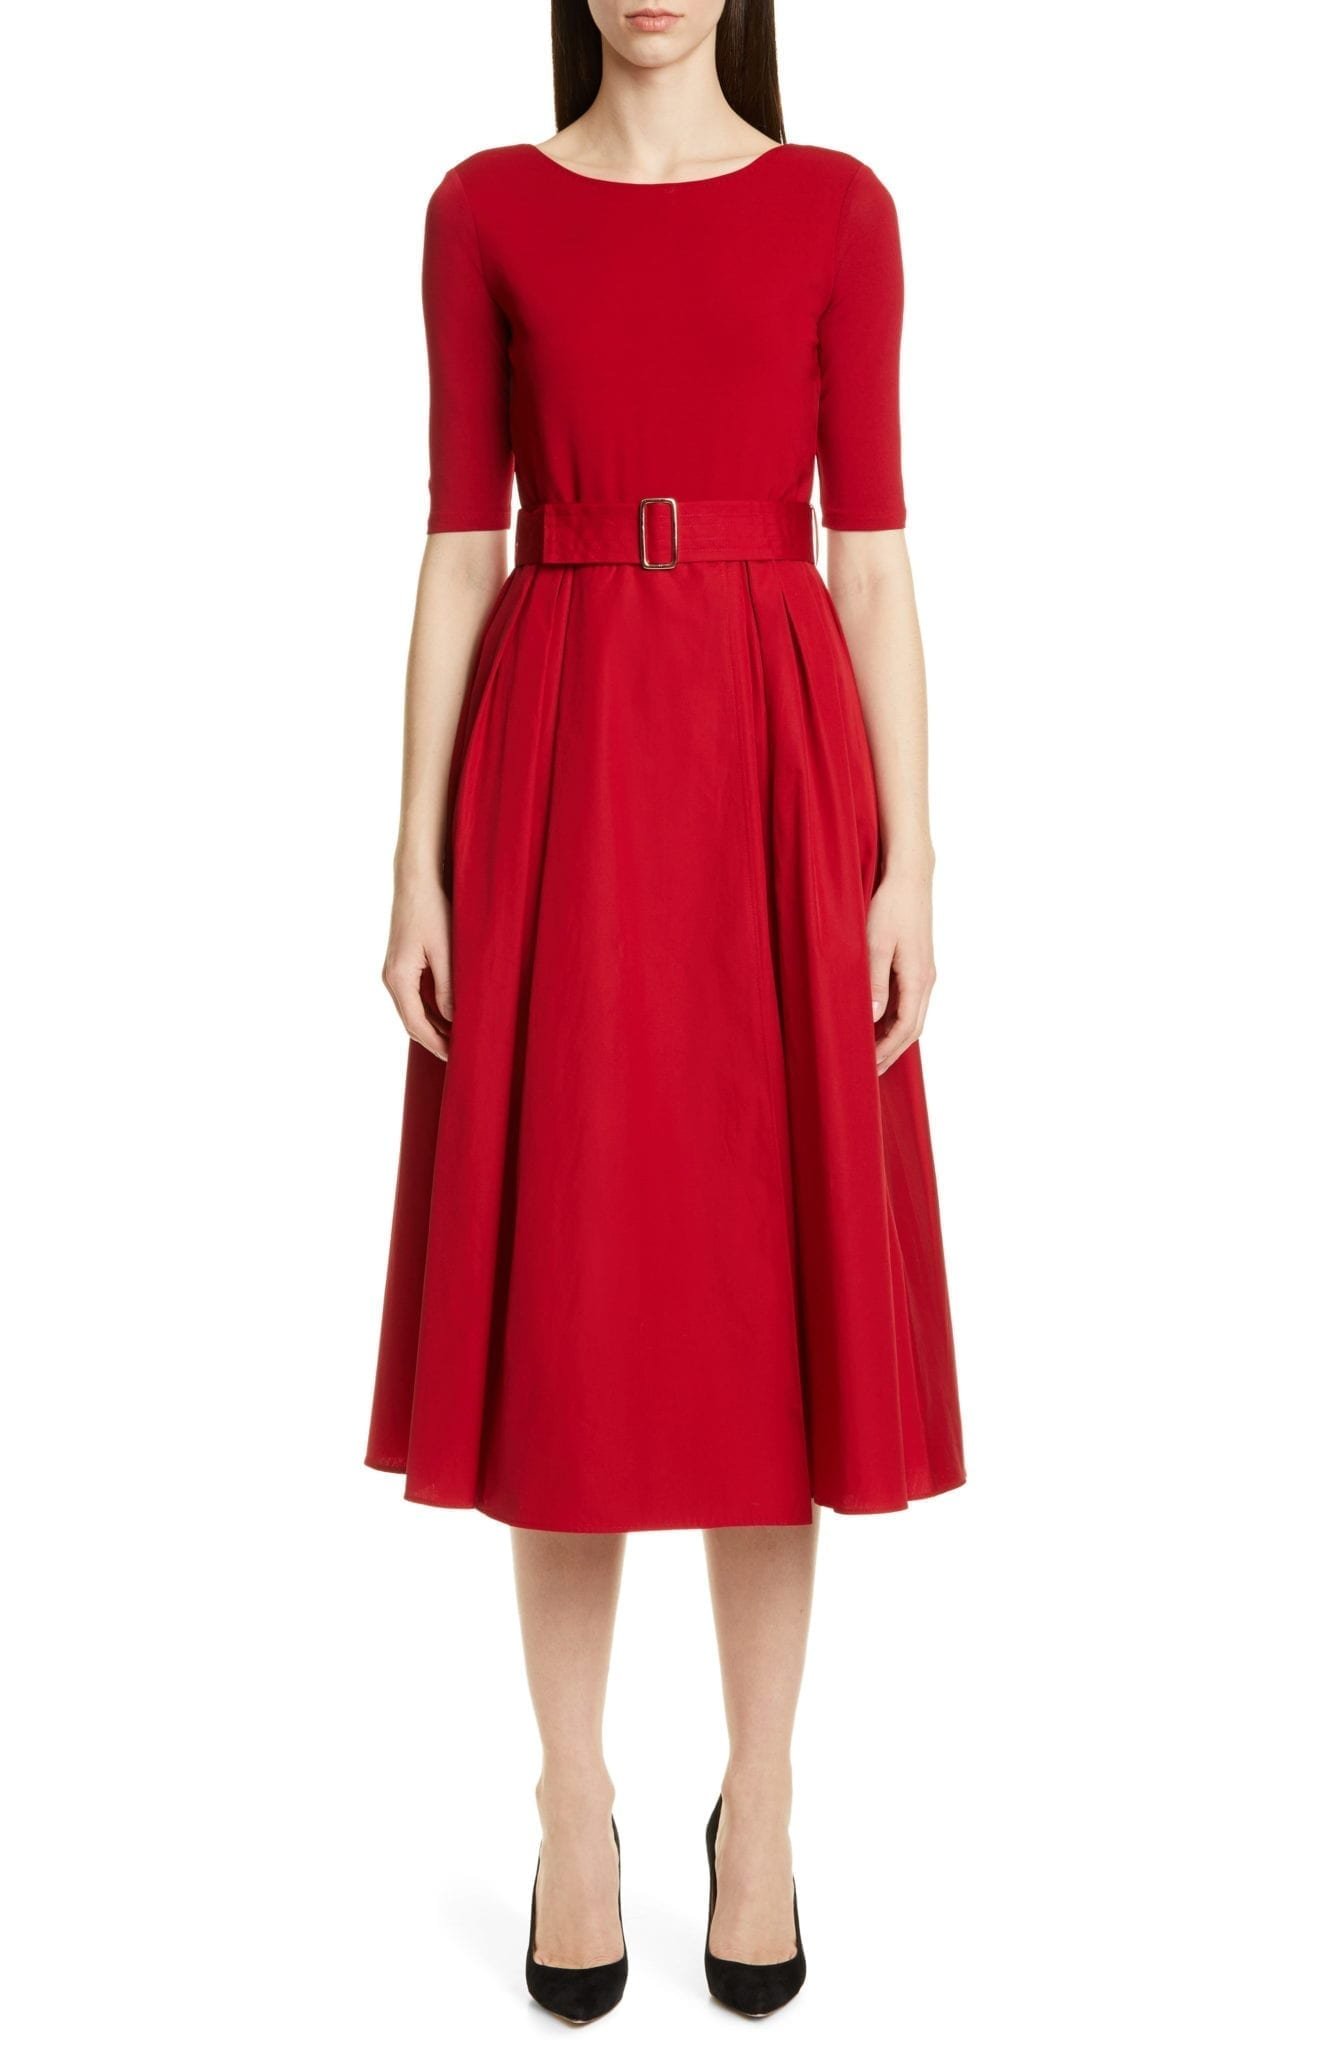 b8809fcdaf6 MAX MARA Affine Belted Midi Red Dress - We Select Dresses